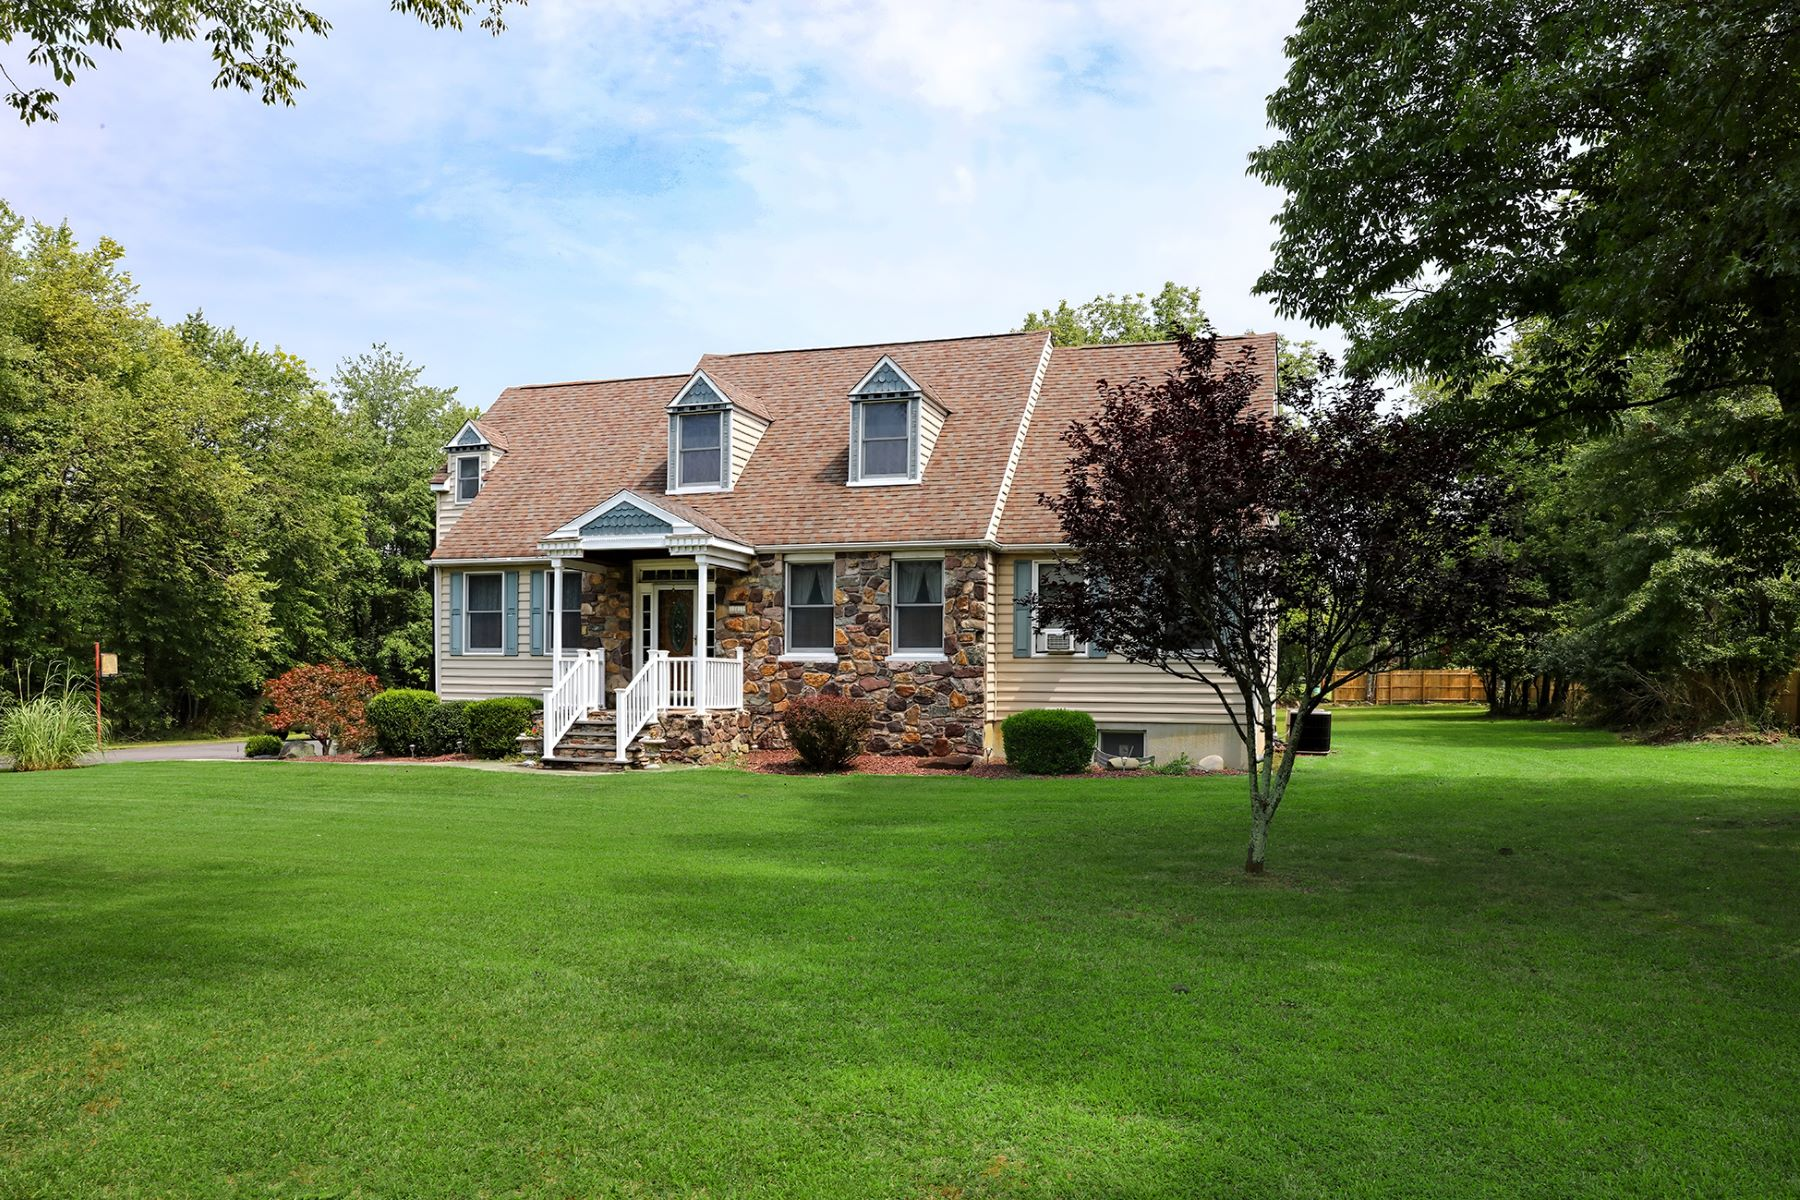 Single Family Homes のために 売買 アット A Bucolic Setting To Showcase This Custom Home 263 Goat Hill Road, Lambertville, ニュージャージー 08530 アメリカ